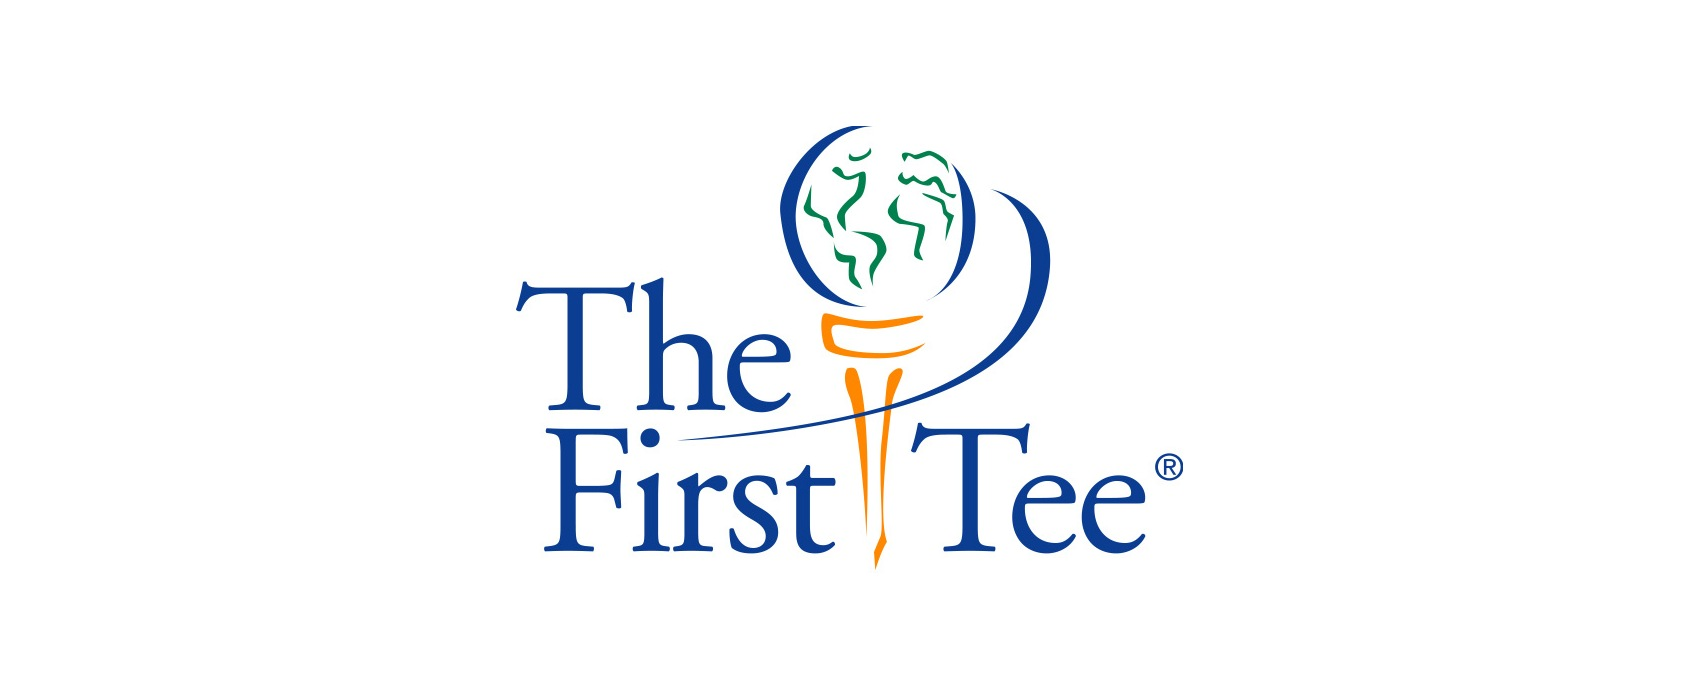 """The First Tee"" Grows the Game"